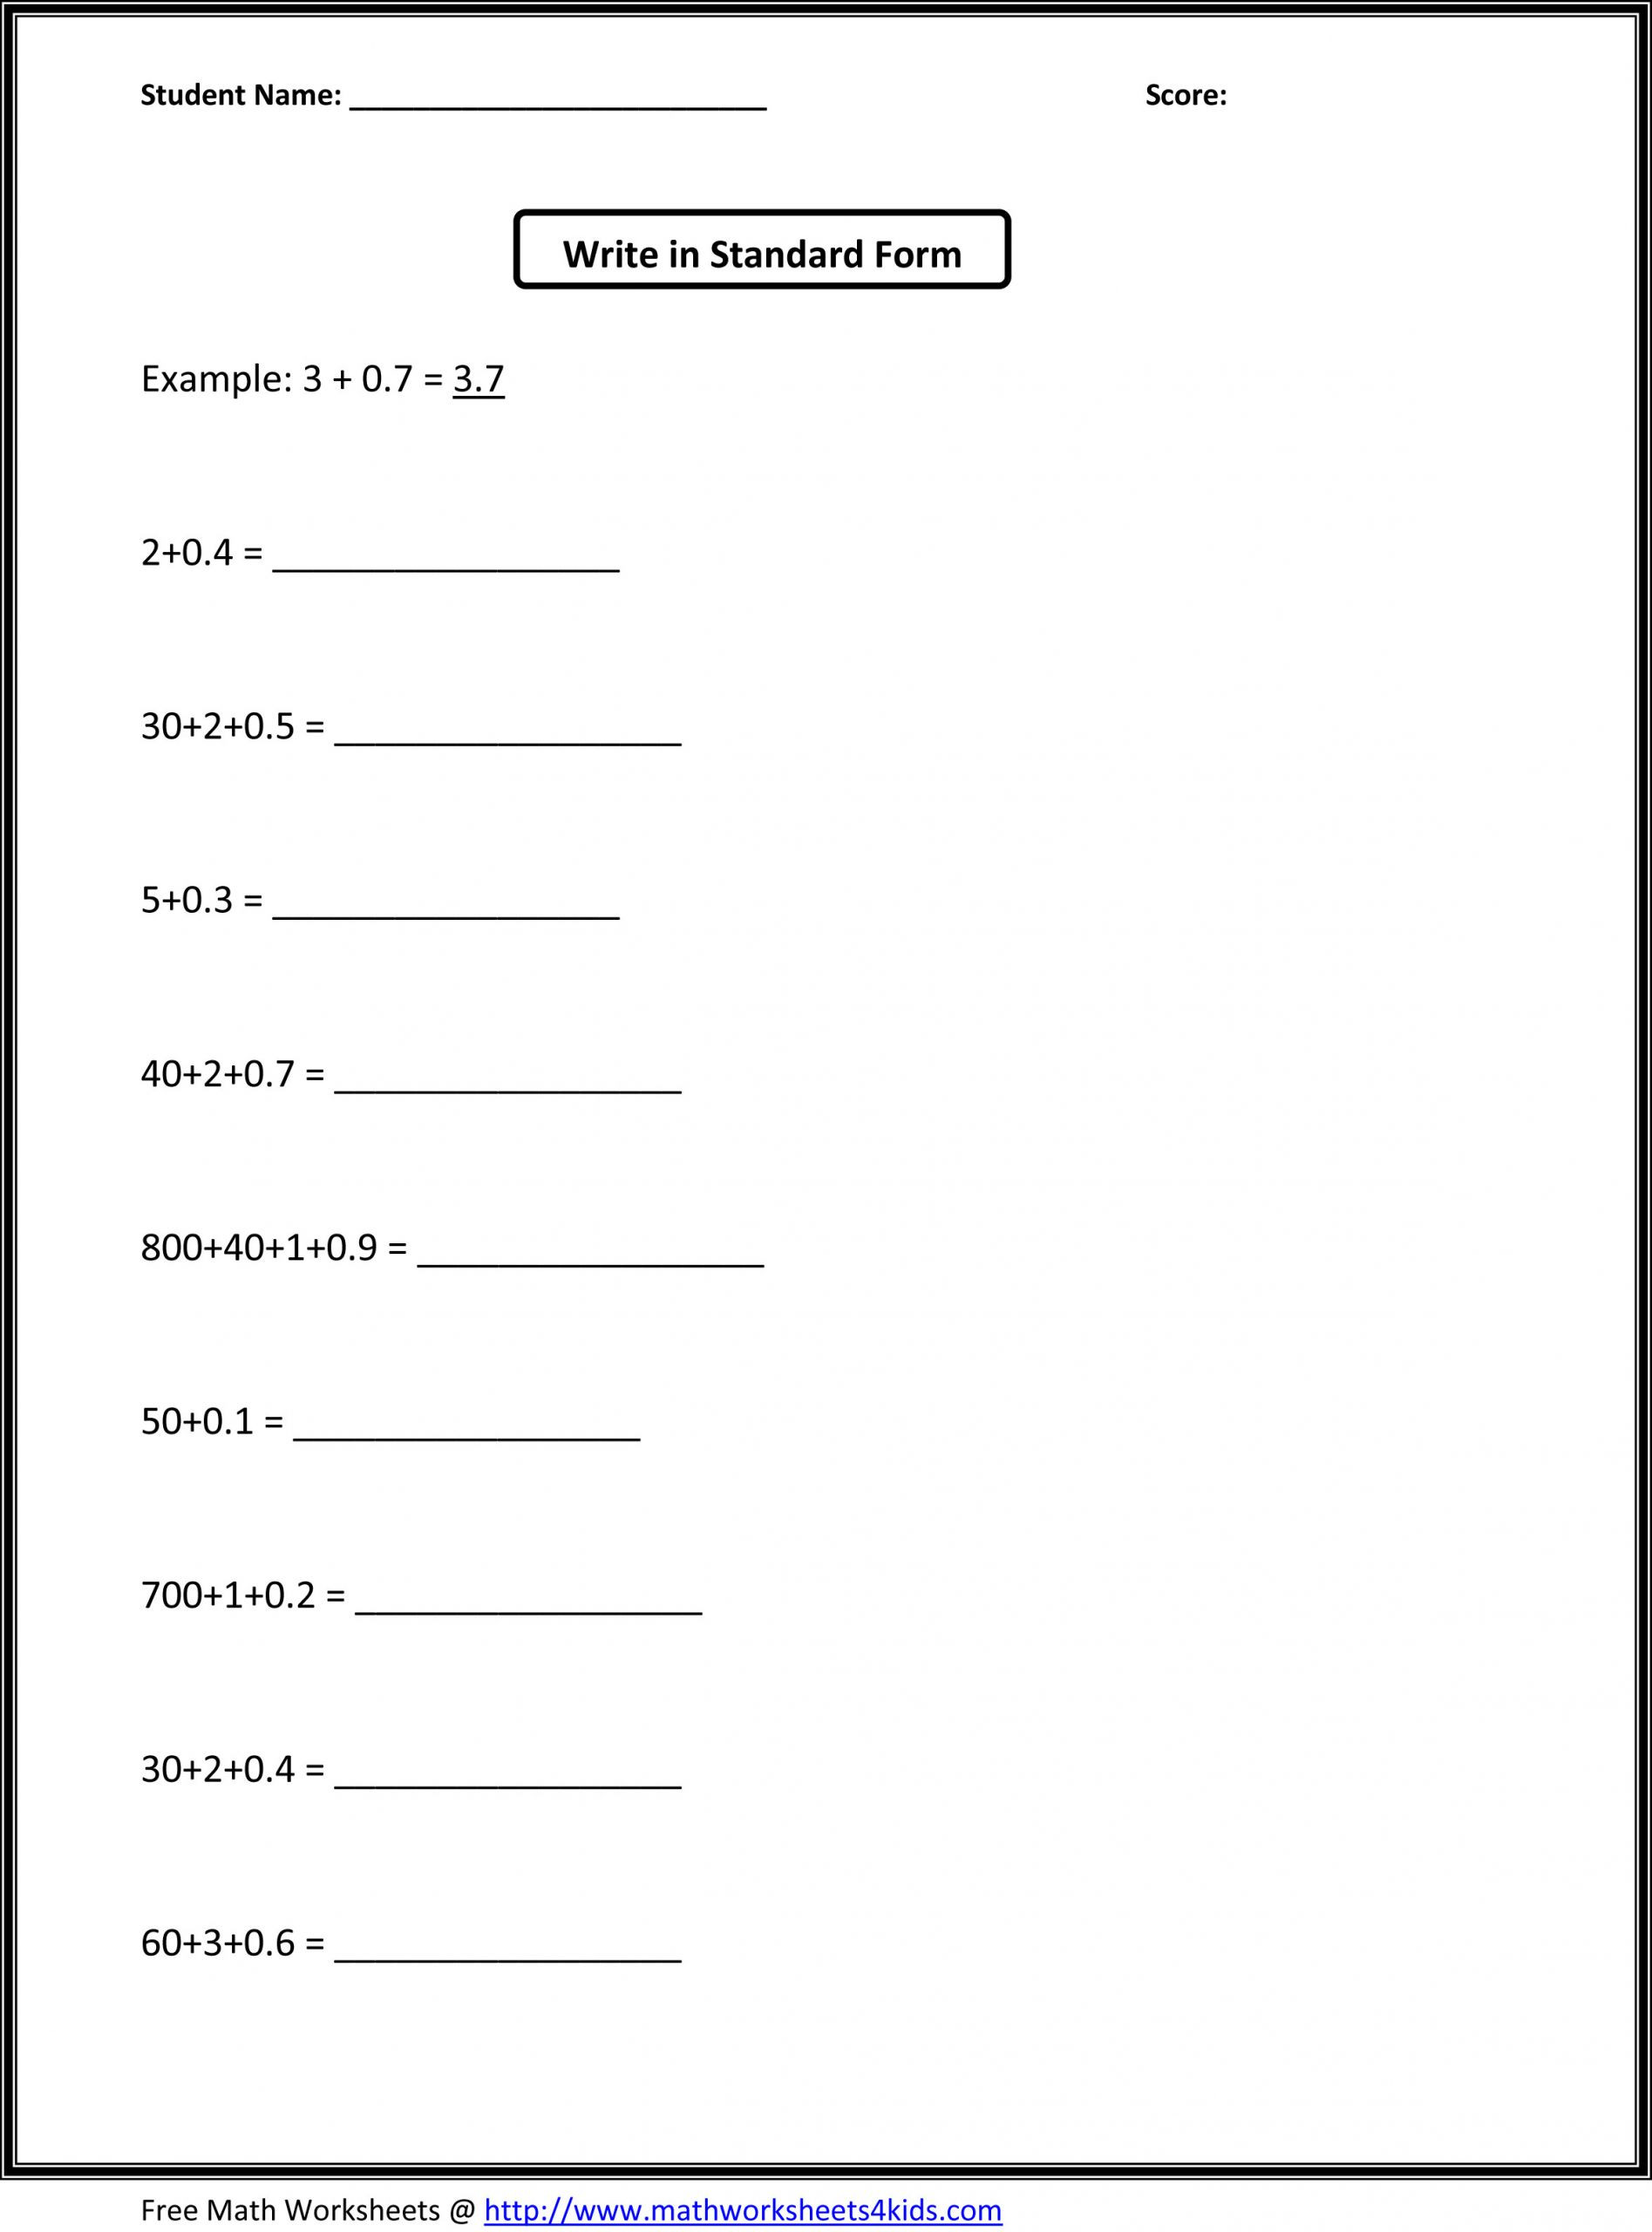 Comparing Fractions Third Grade Worksheet 3 Free Math Worksheets Third Grade 3 Subtraction Subtract